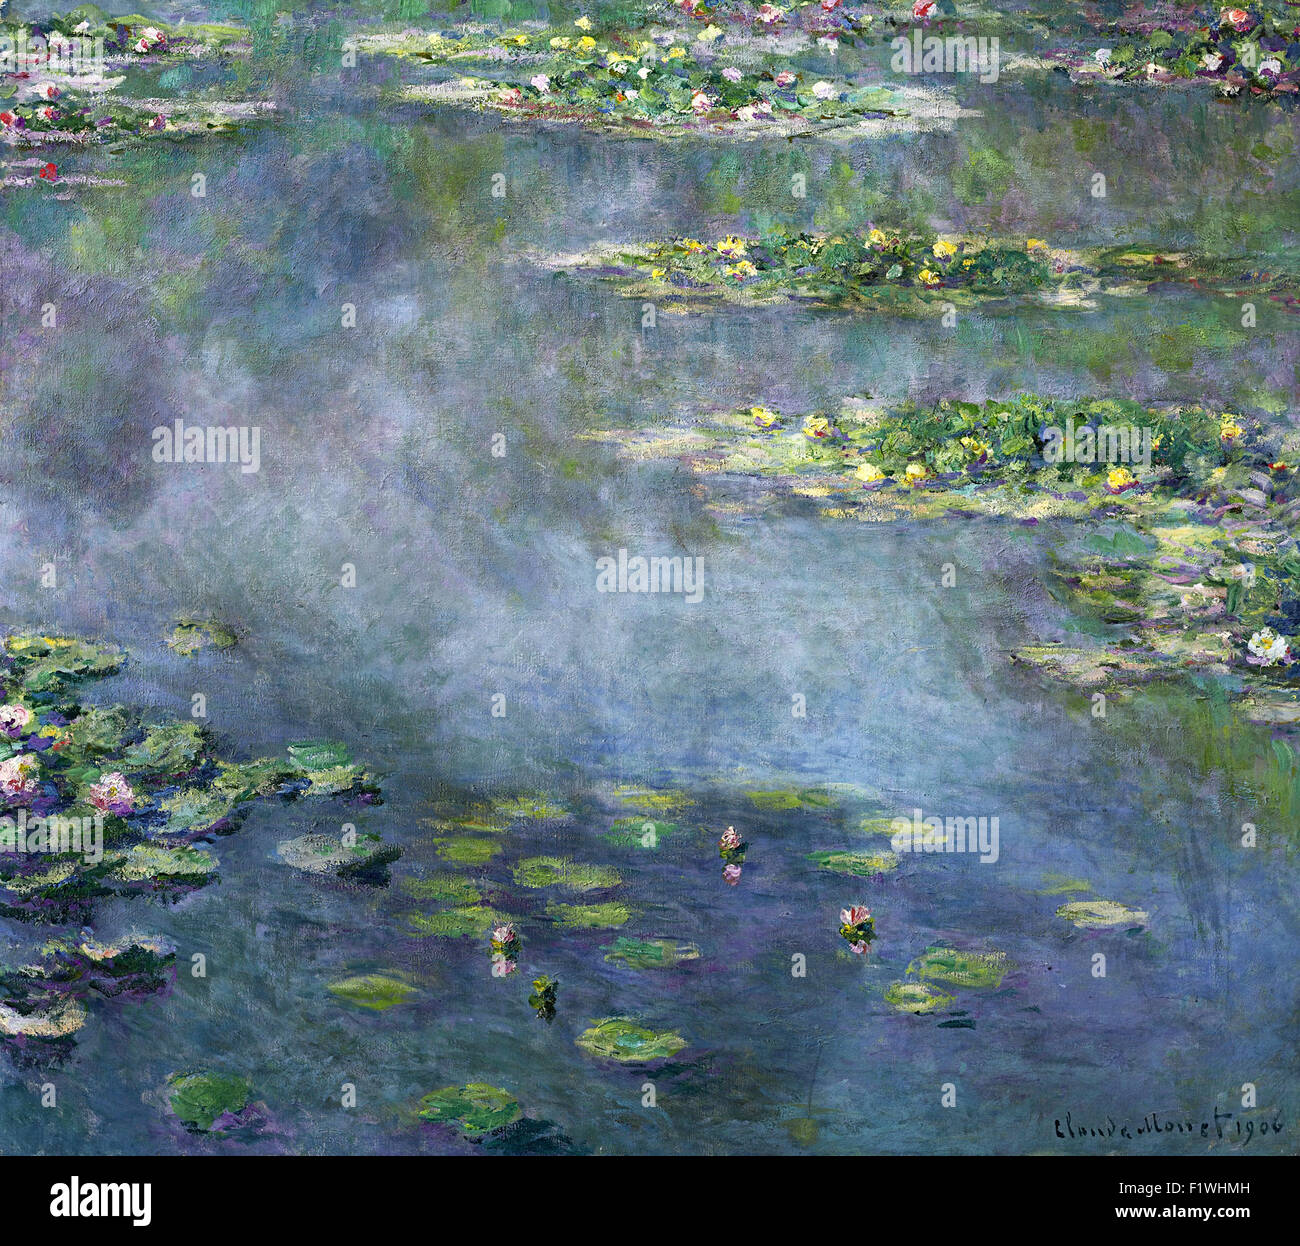 Claude Monet - Nymphéas 11 - Stock Image